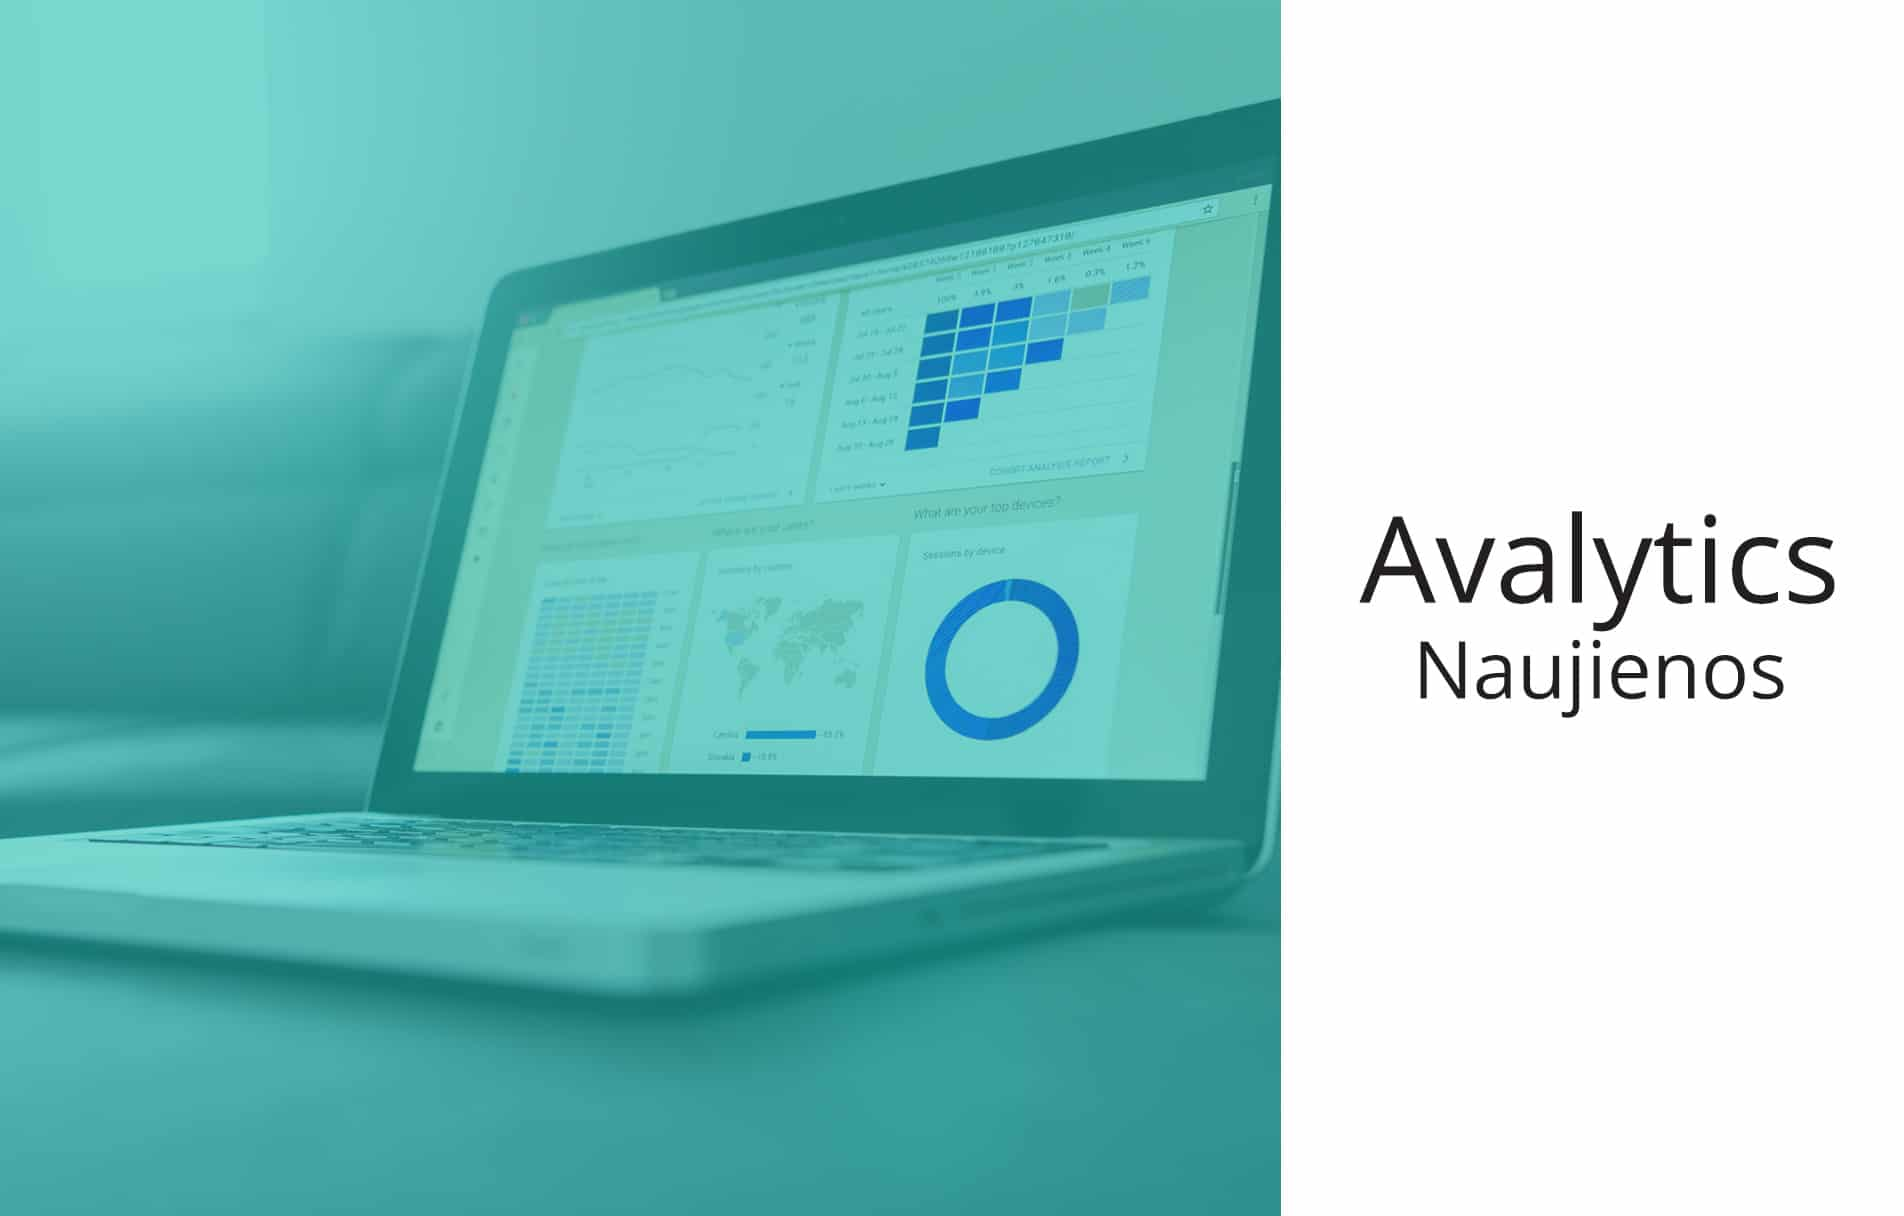 Avalytics-power-bi-naujienos